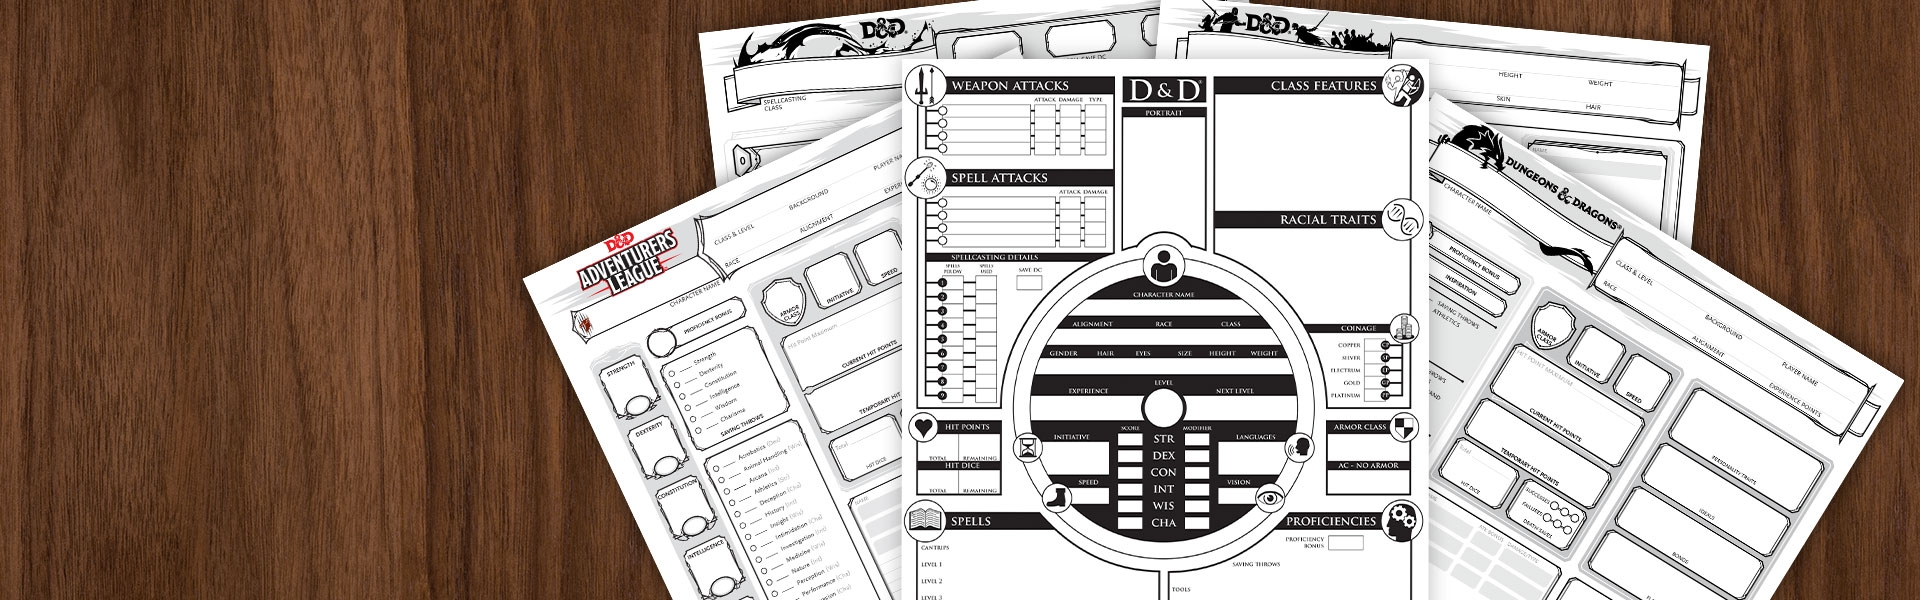 D&D 101: Character Sheet Workshop pt. 2